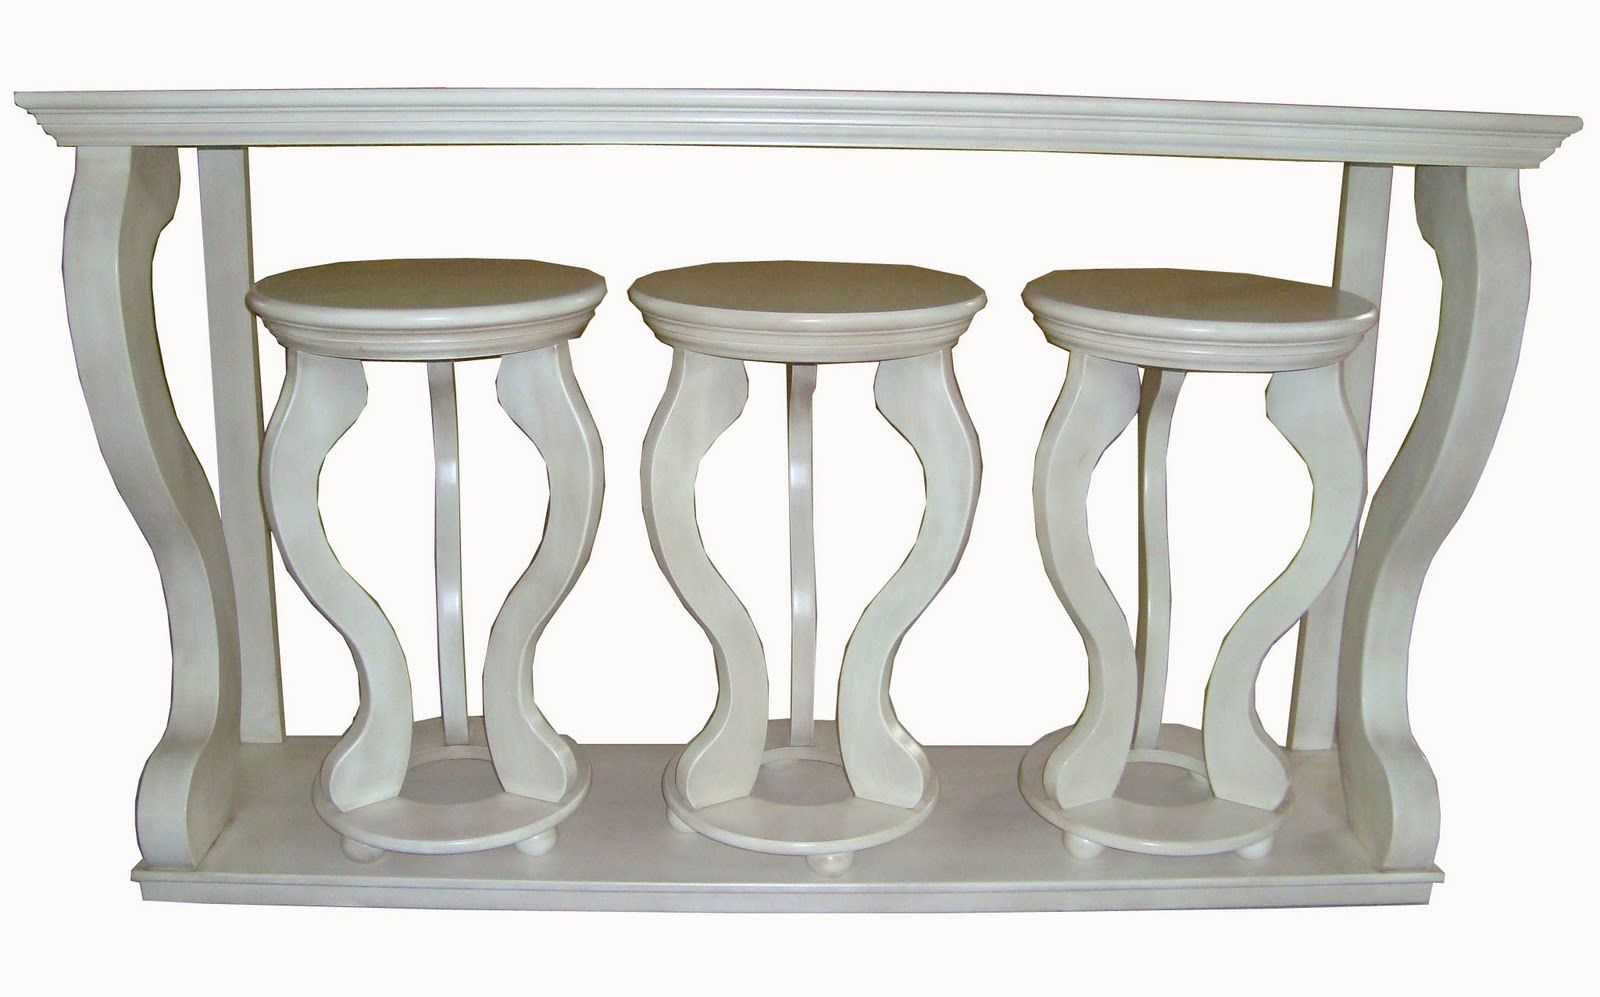 Fabulous I want this Tainoki console table and stools set so bad  UT98